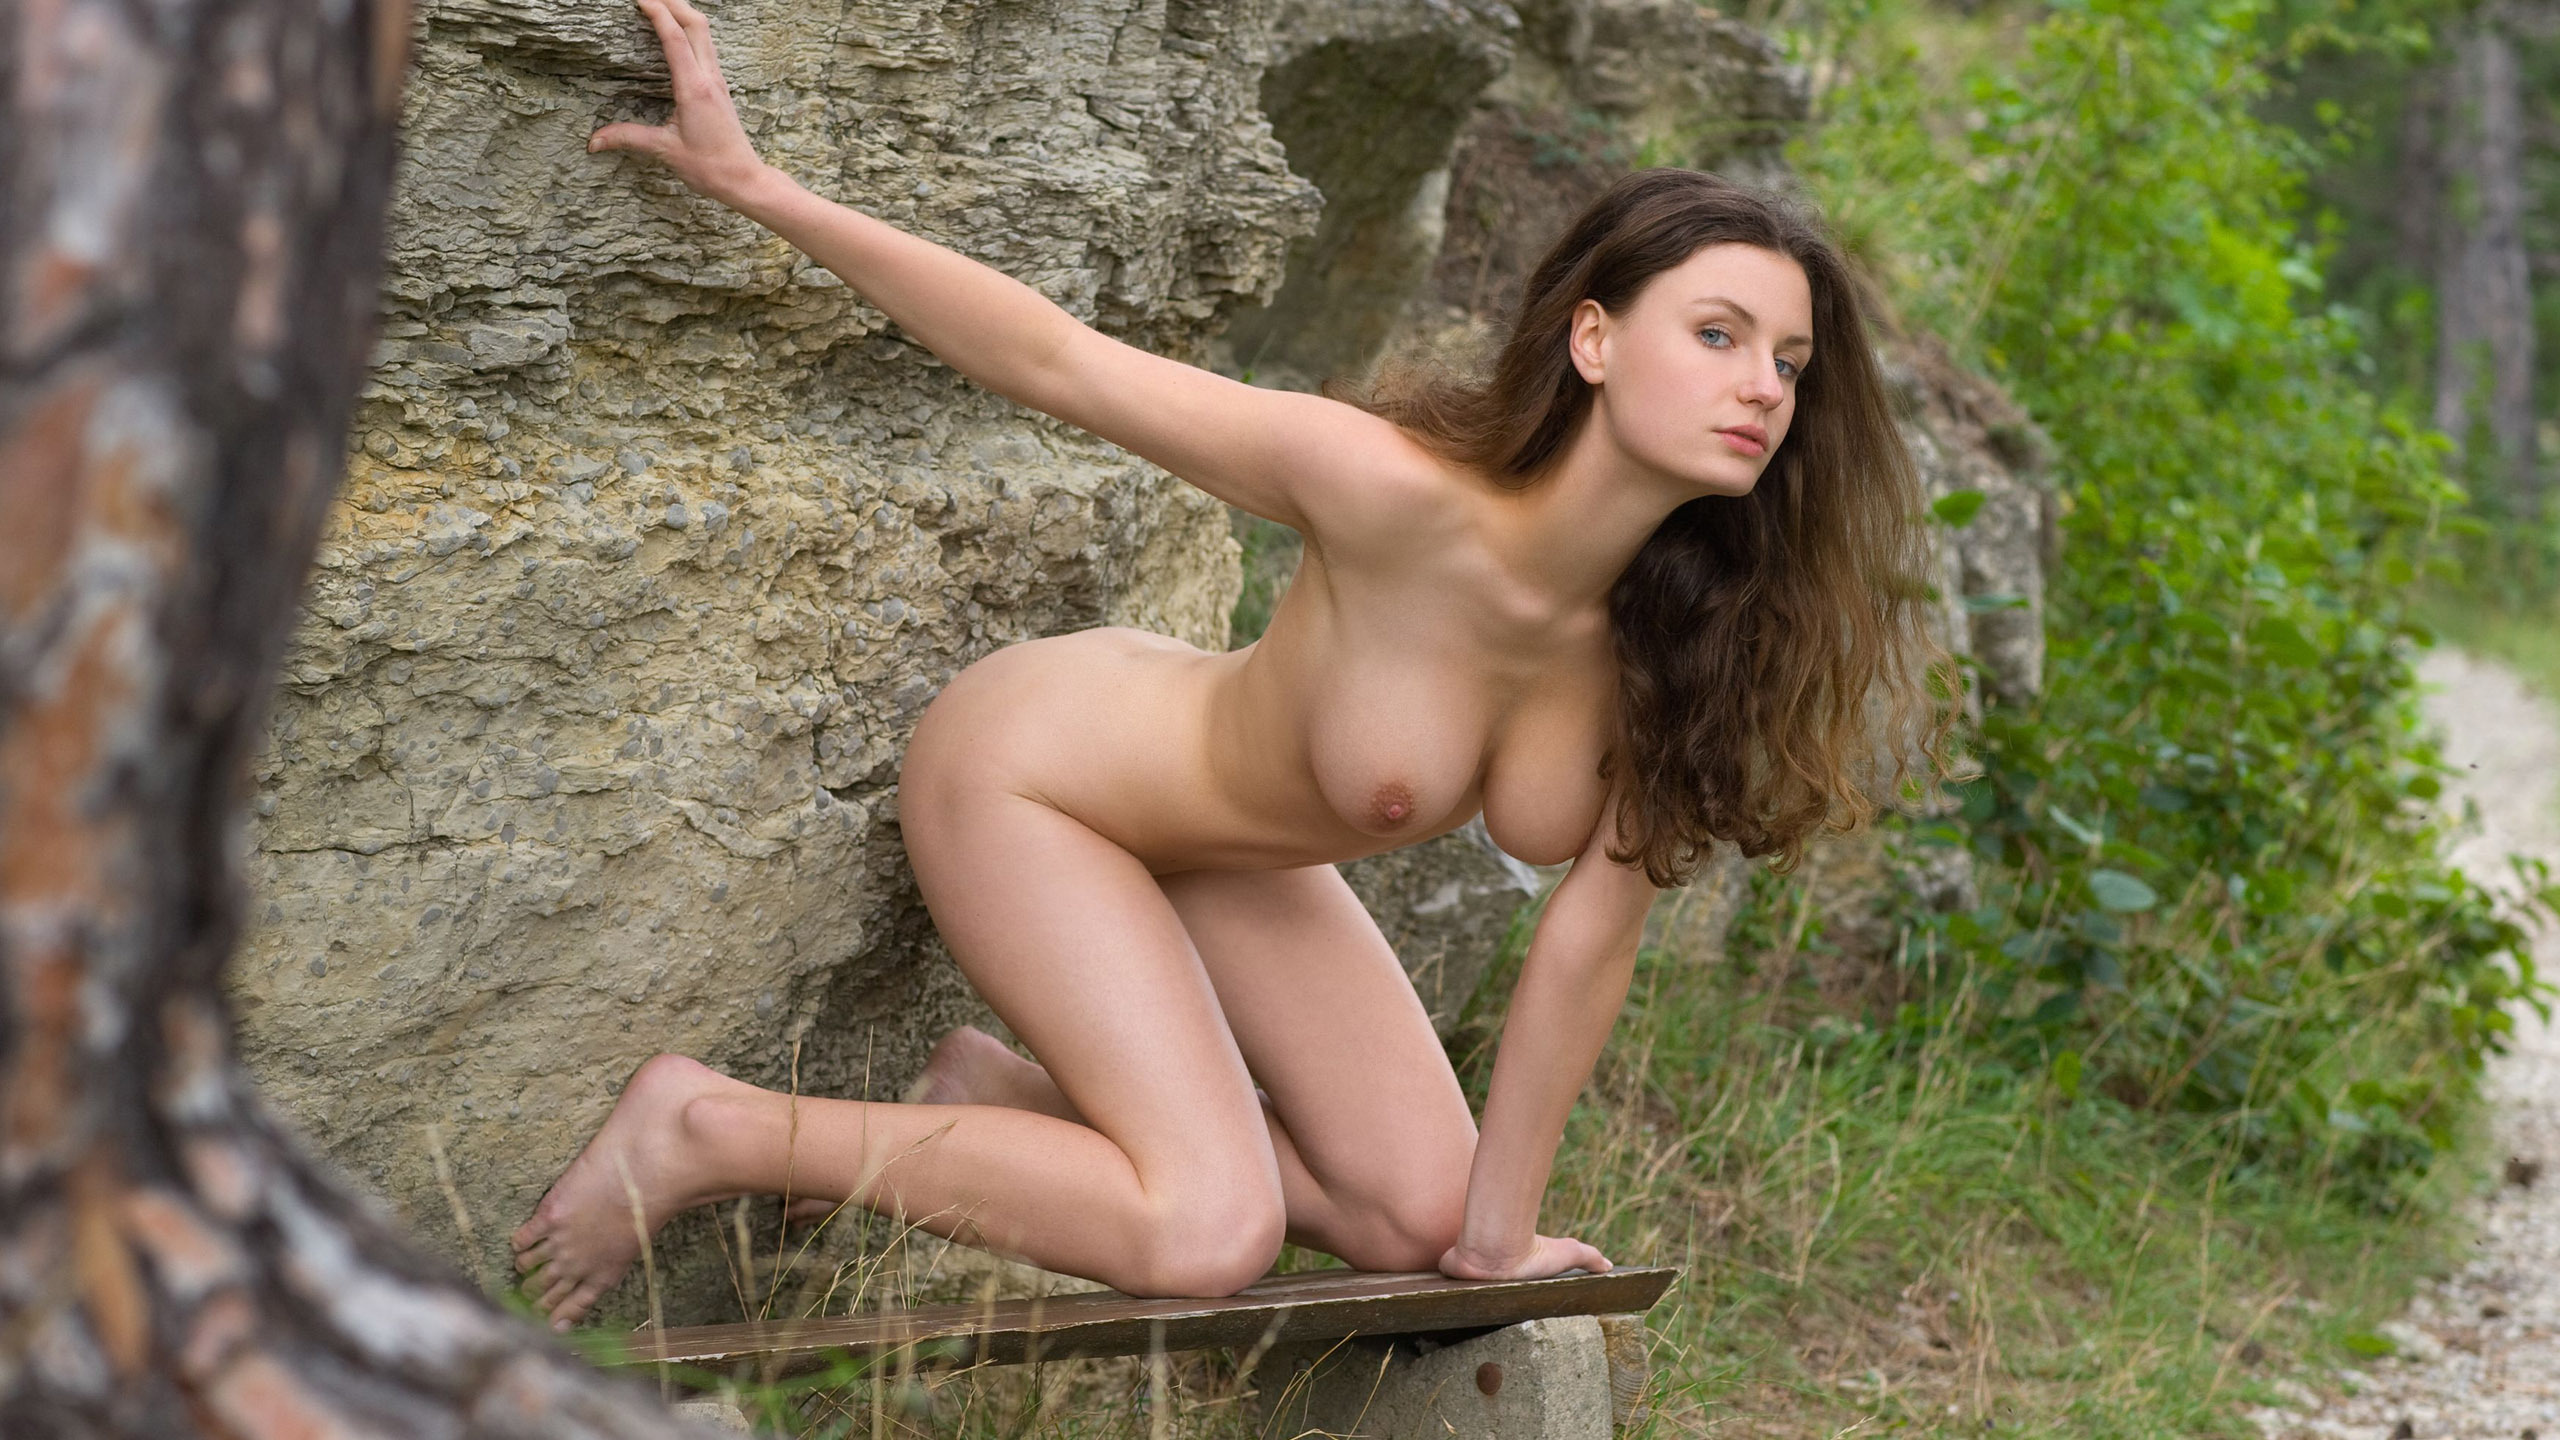 Nude outdoor video #15